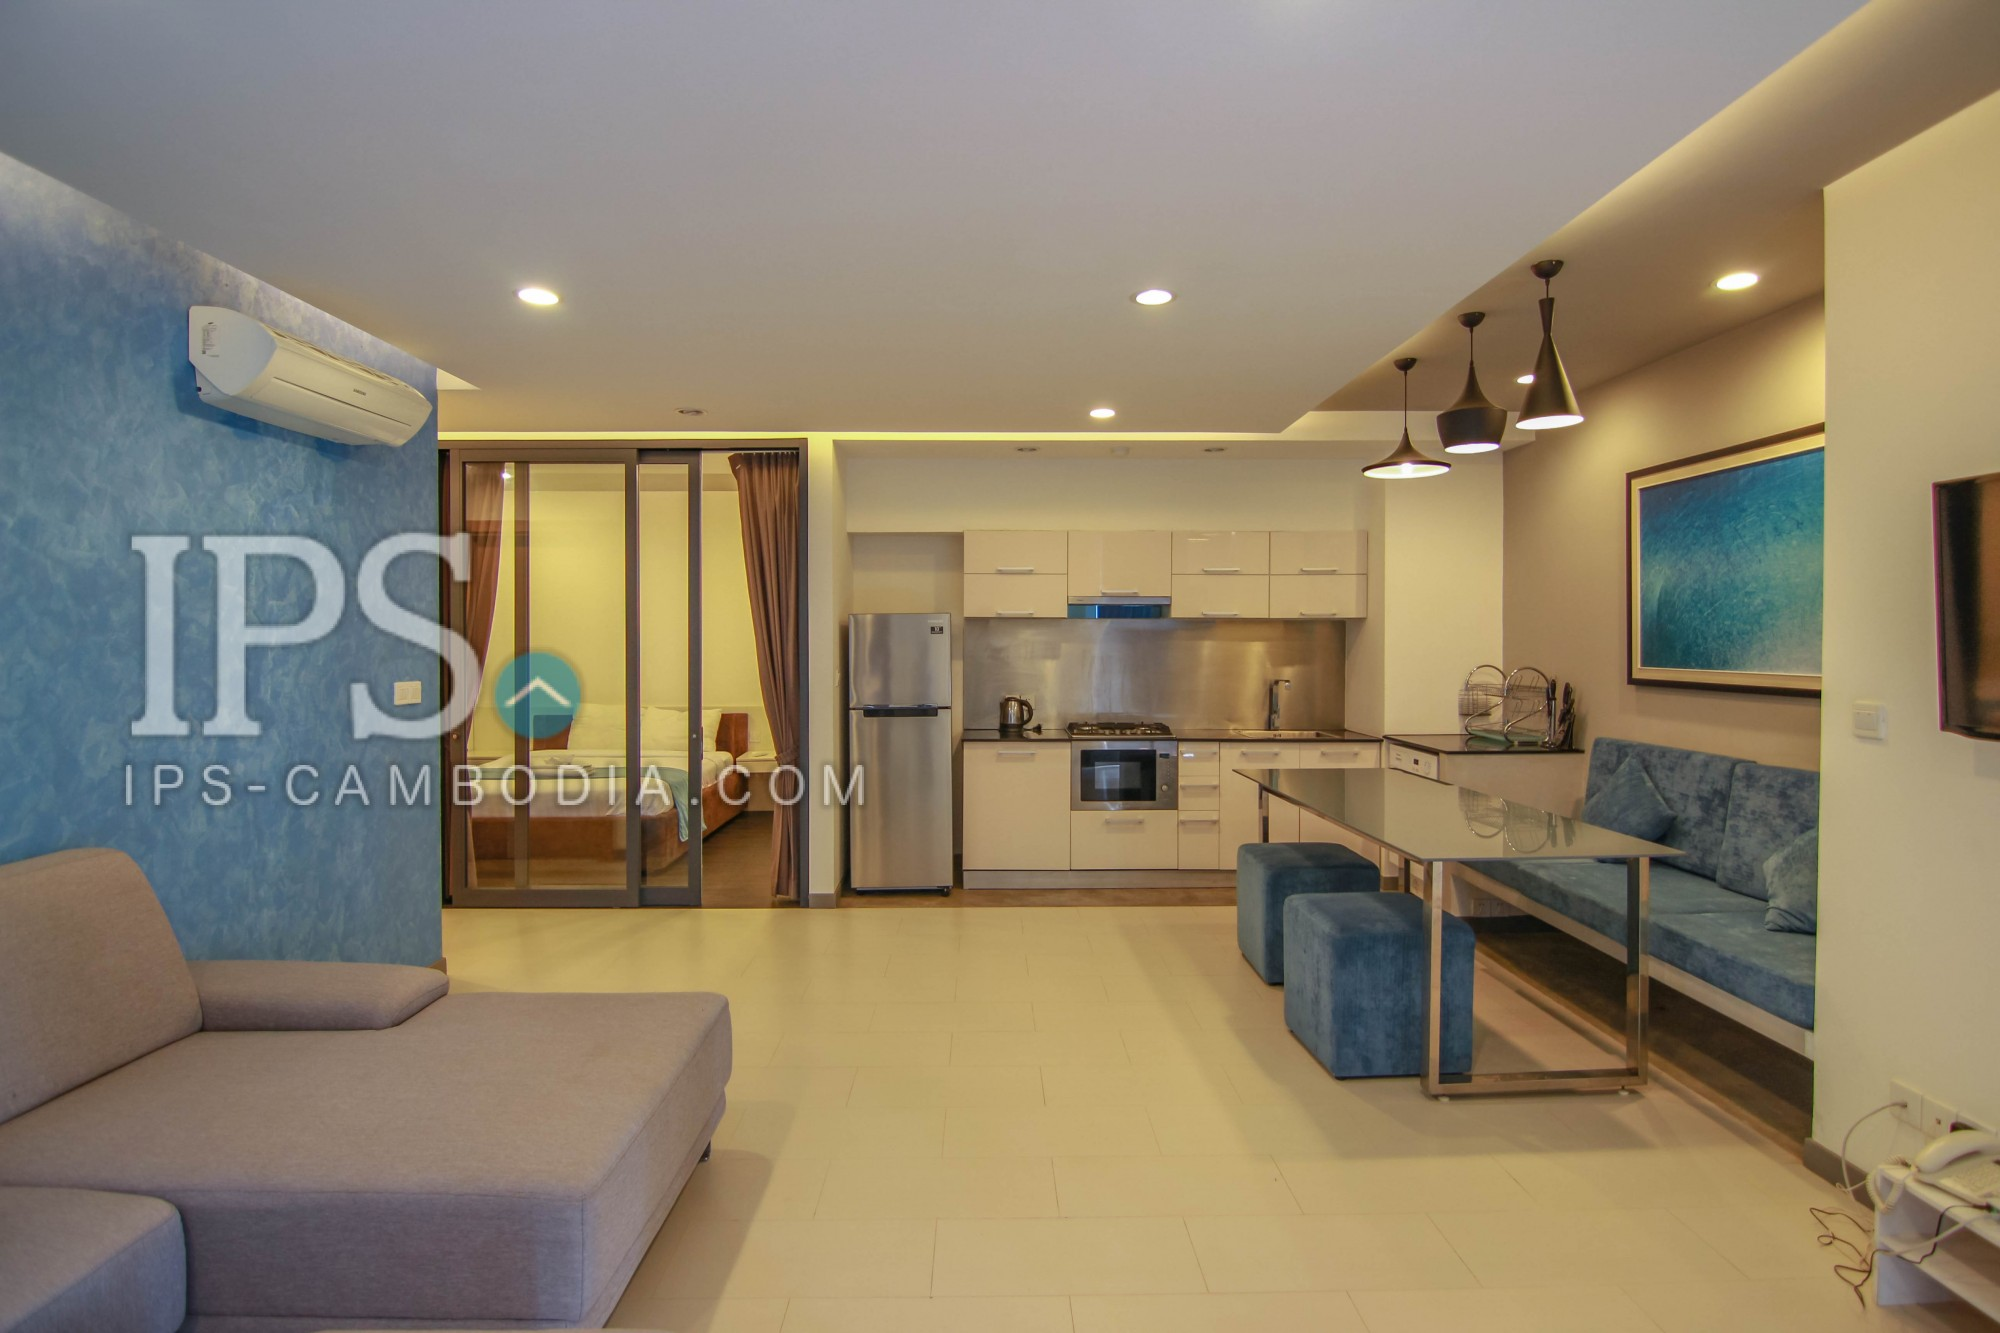 3 Bedroom Condo For Sale in Chroy Changvar-Phnom Penh